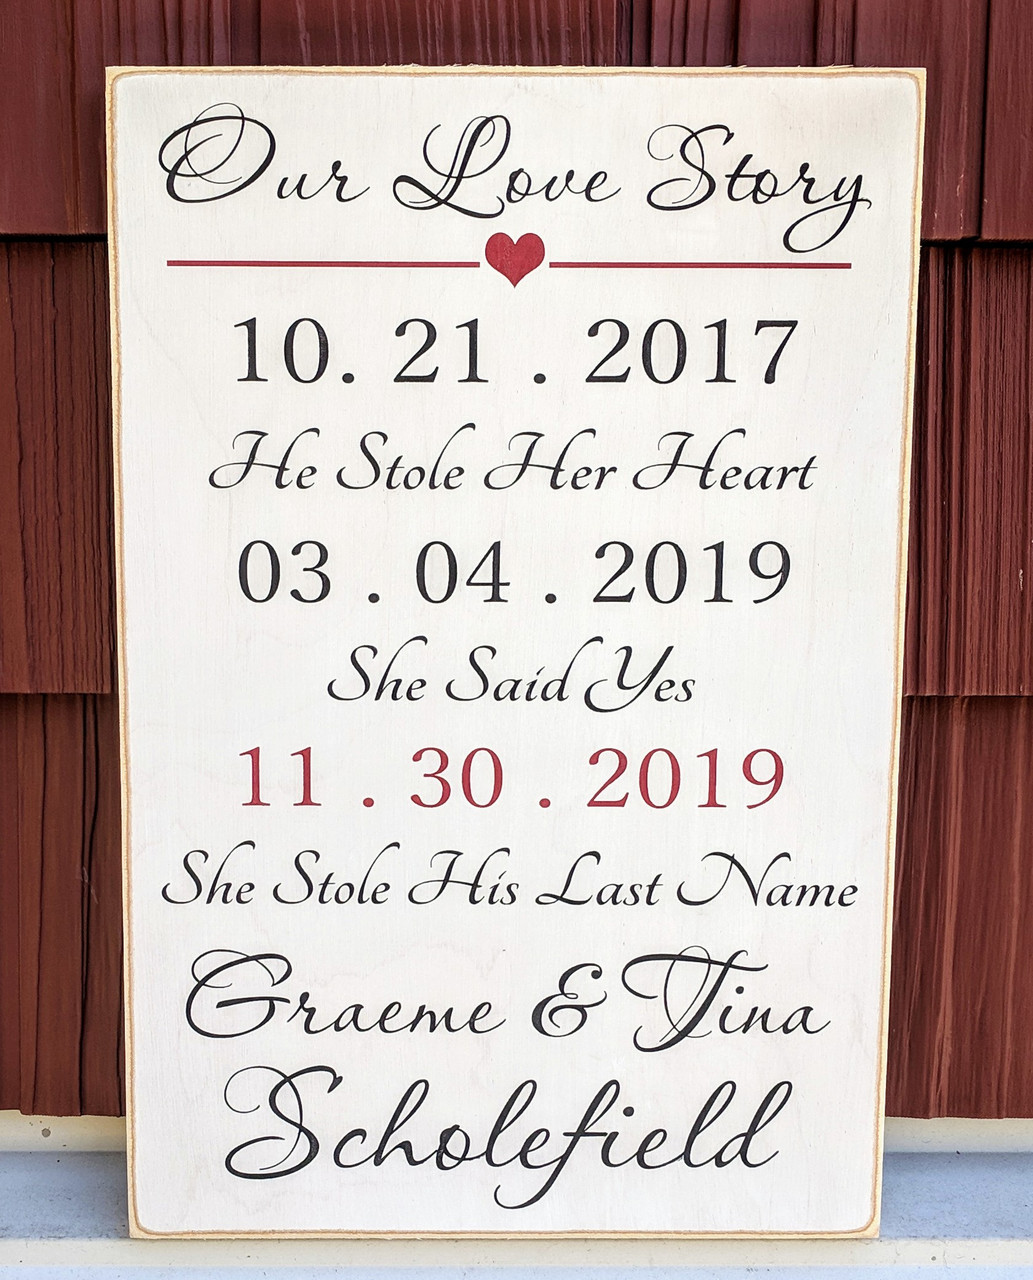 Our Love Story Personalized Sign